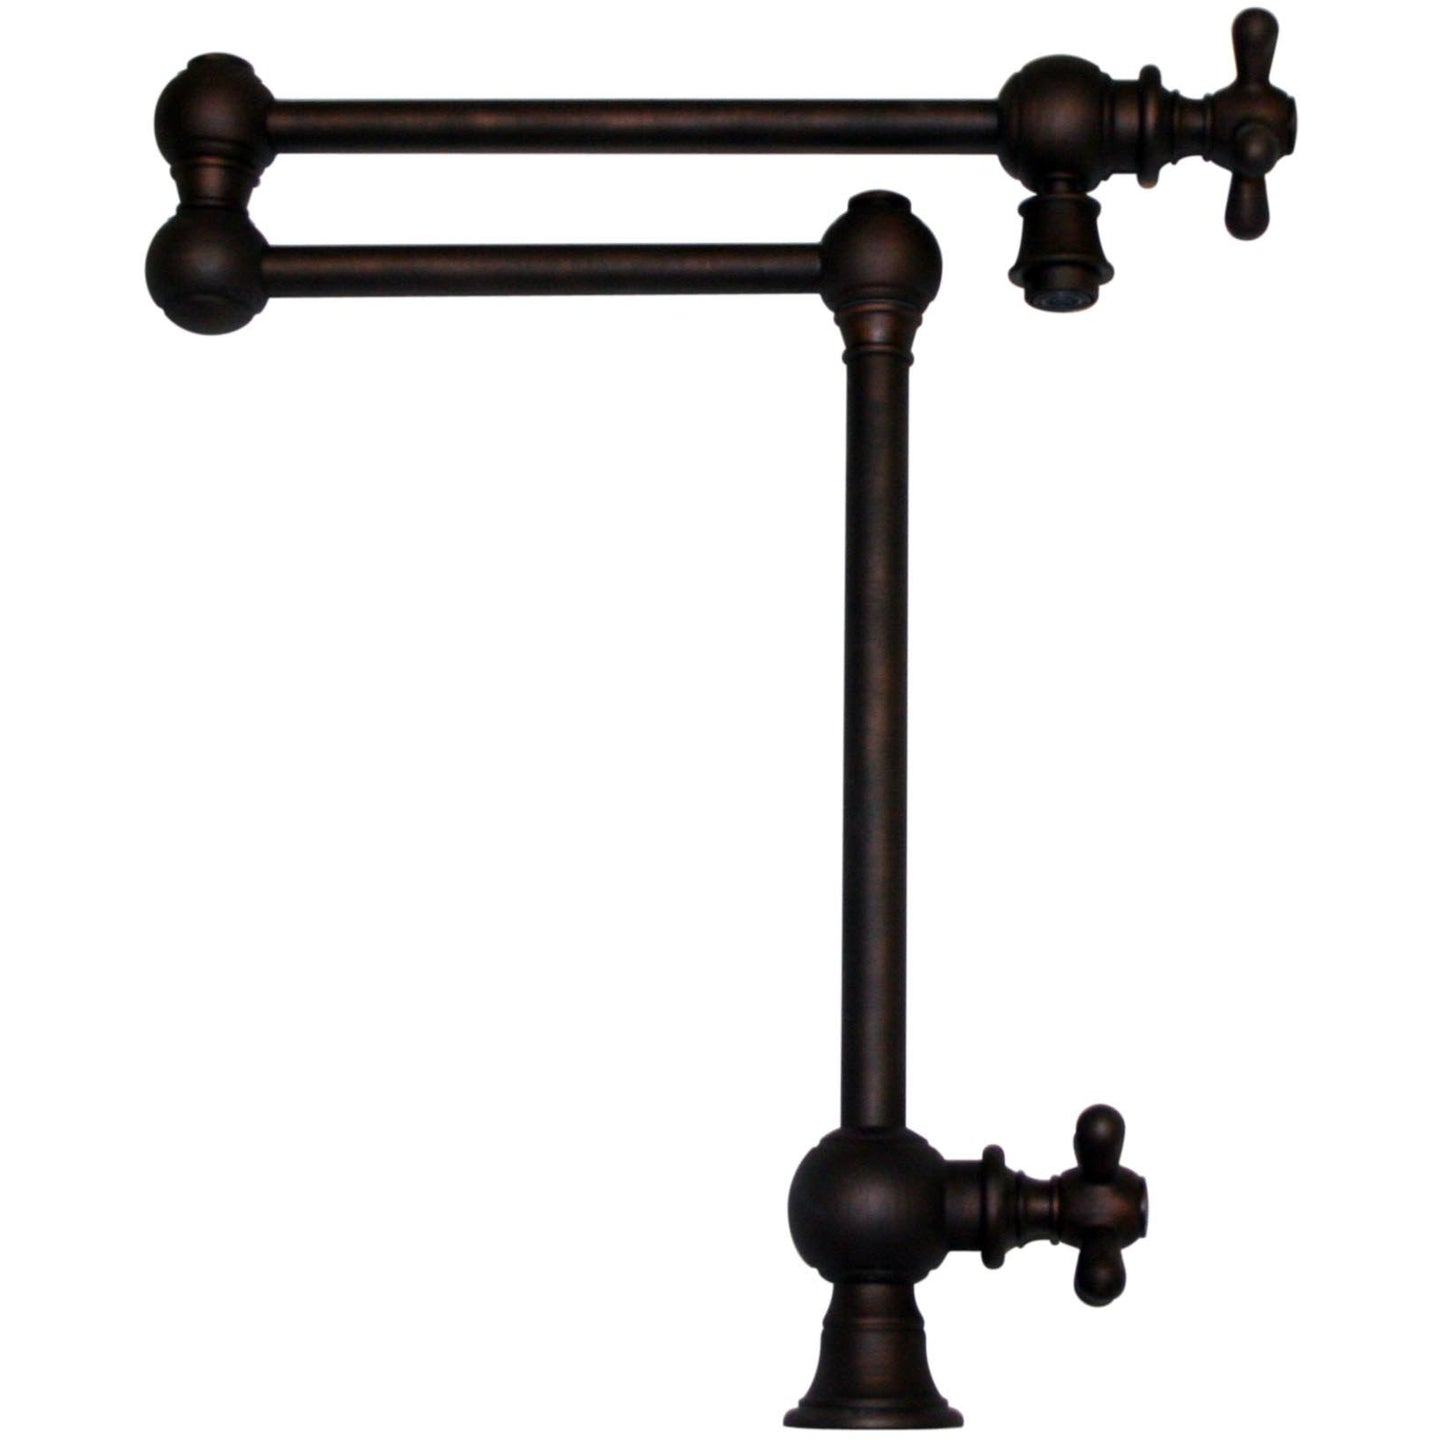 Whitehaus Vintage III Deck Mount Retractable Swing Spout Pot Filler with Cross Handles and Swivel Aerator